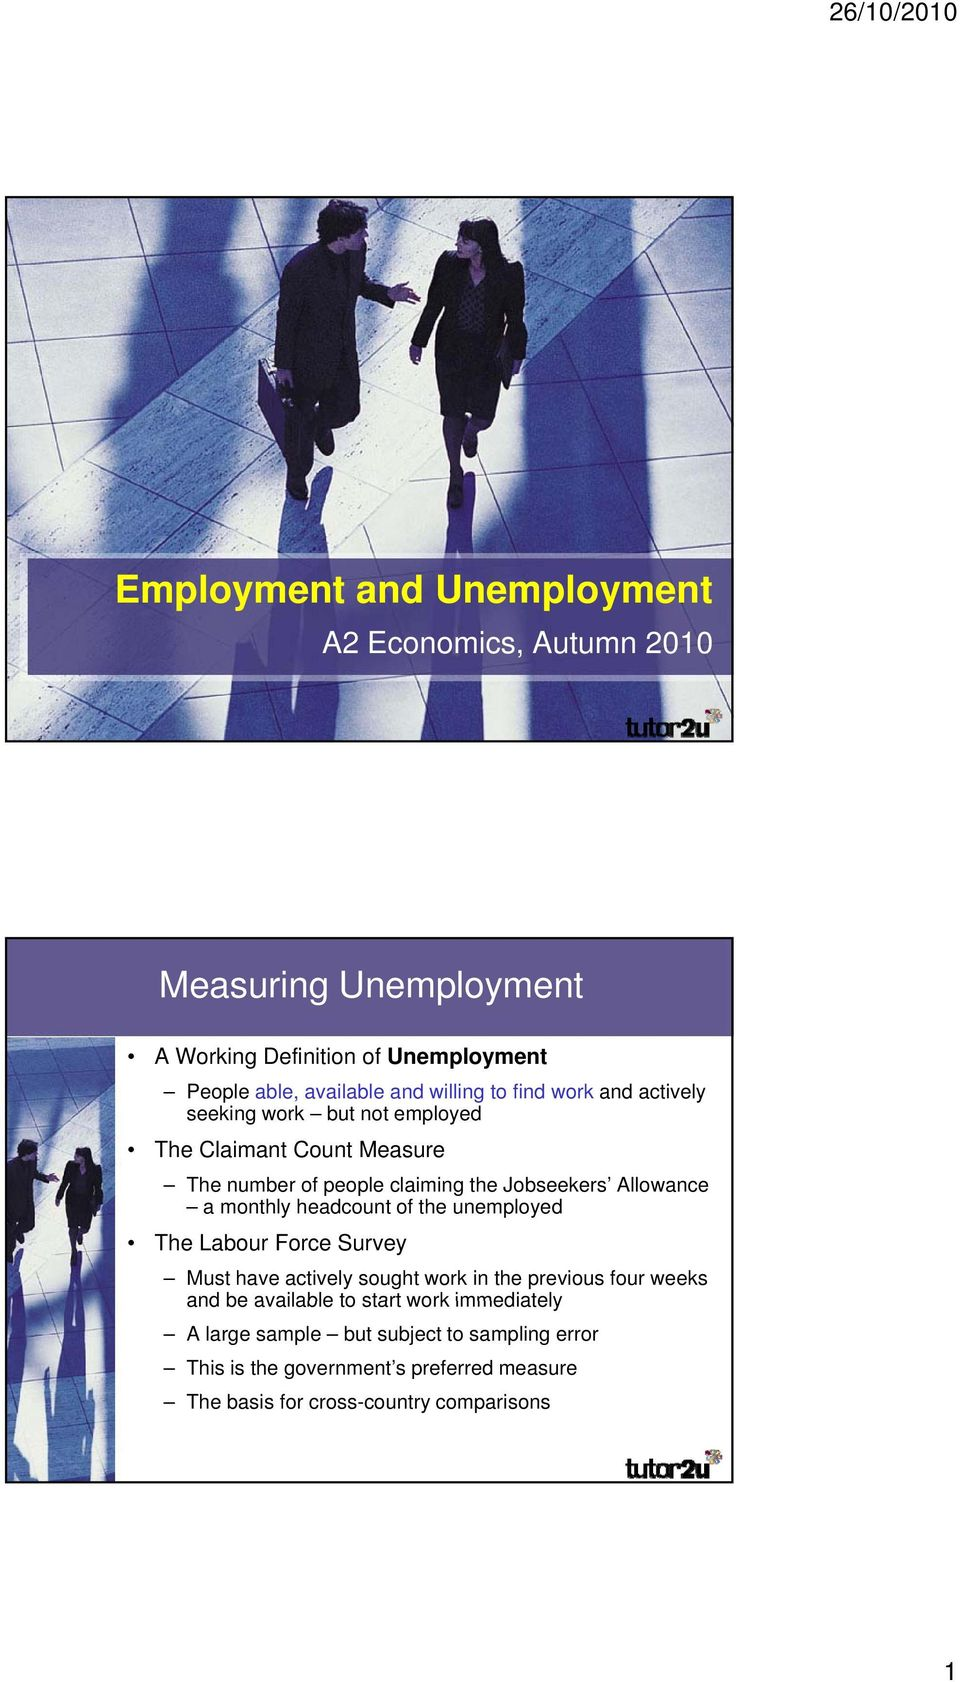 of the unemployed The Labour Force Survey Must have actively sought work in the previous four weeks and be available to start work immediately and be